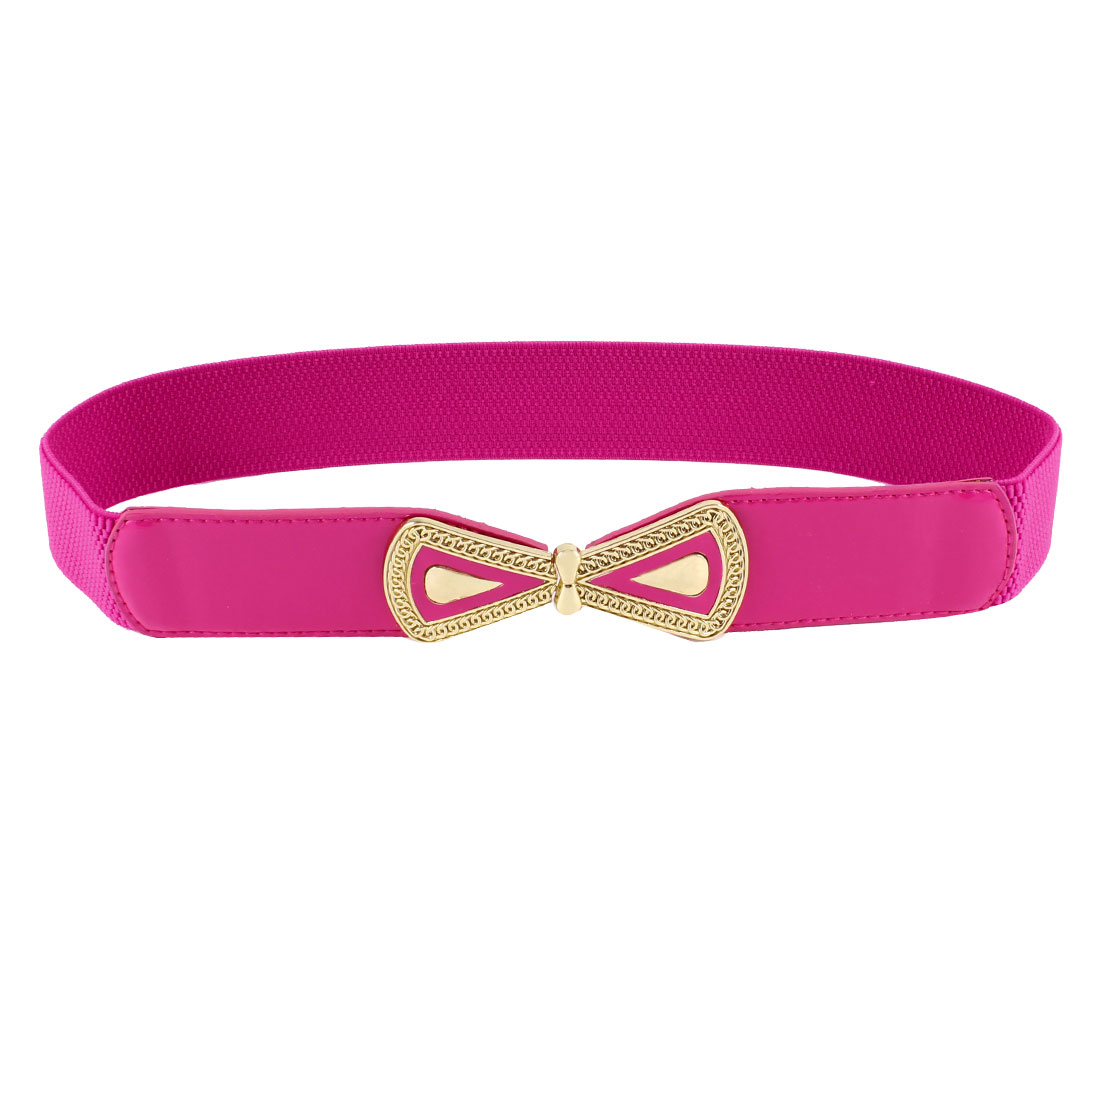 Ladies Bowtie Interlock Buckle Faux Leather Thin Skinny Waistband Belt Fuchsia